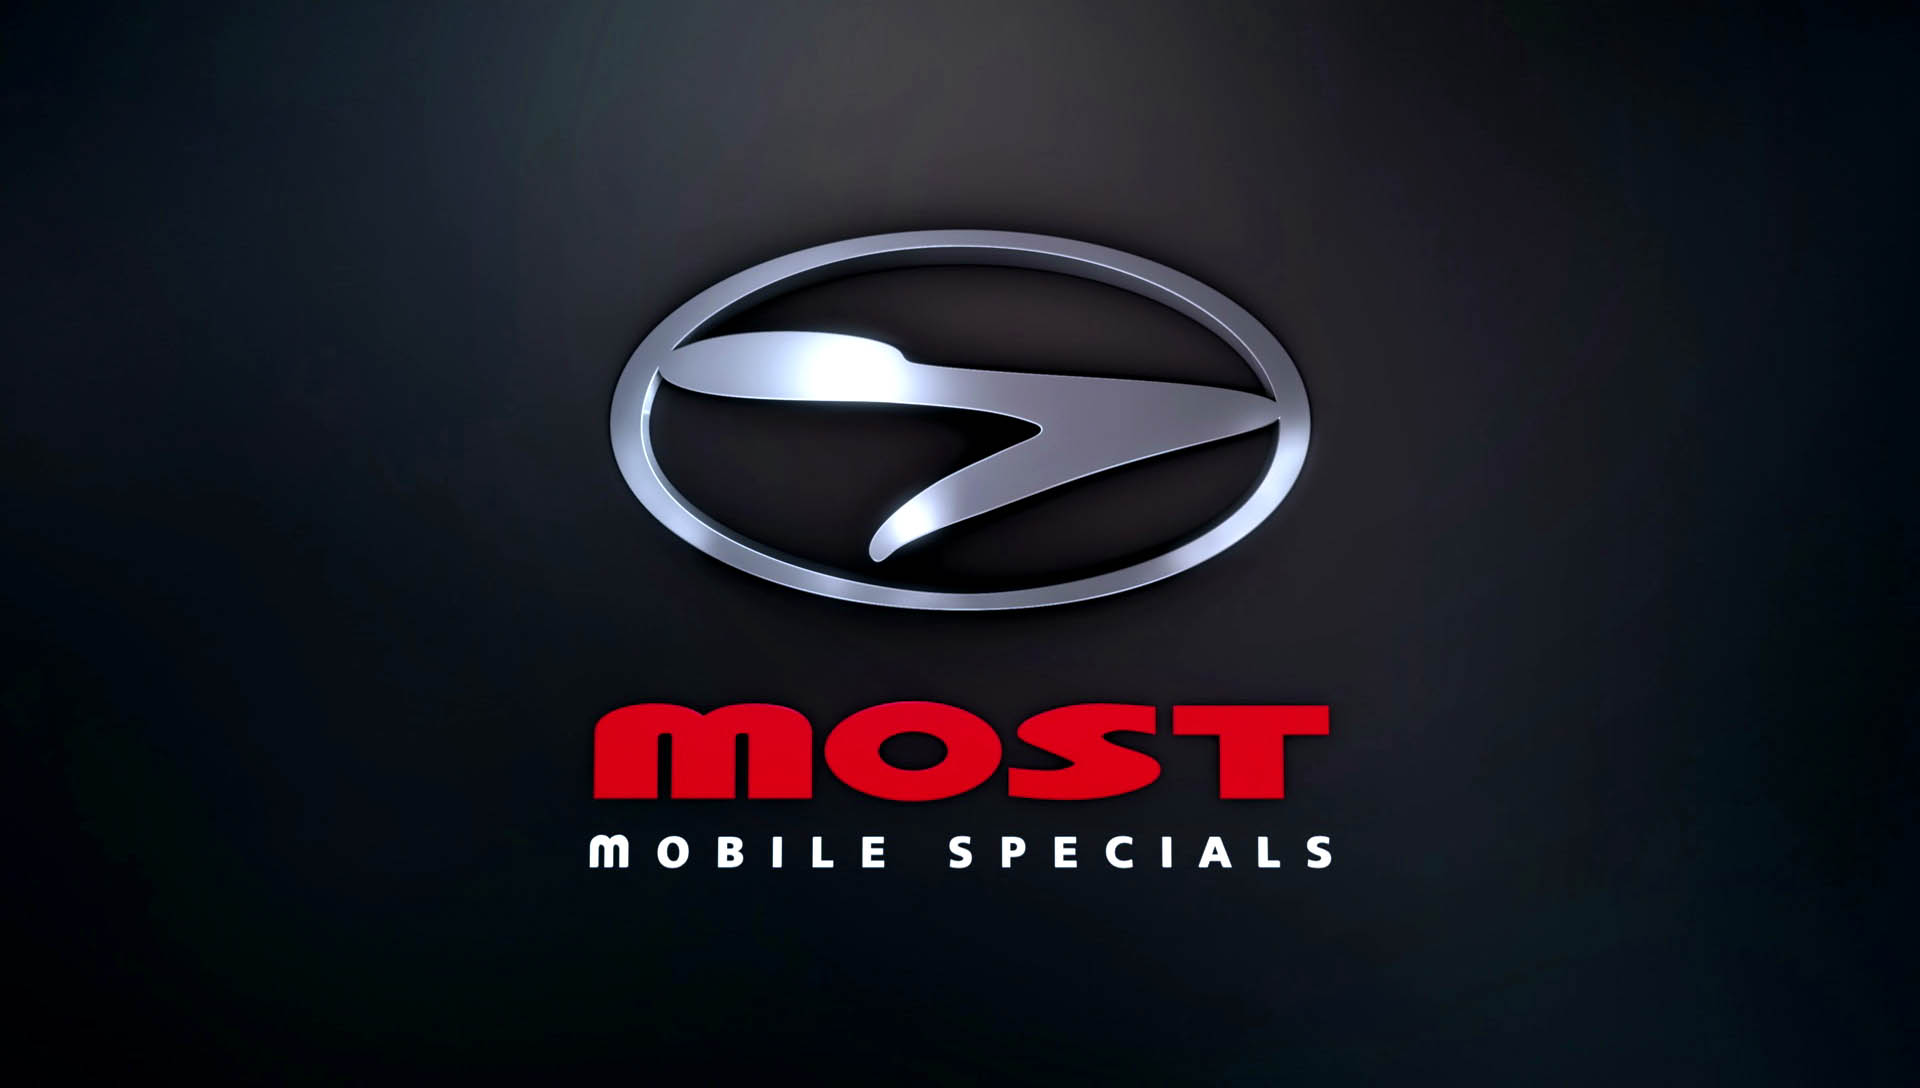 Logo Most Mobile Specials Imagefilm